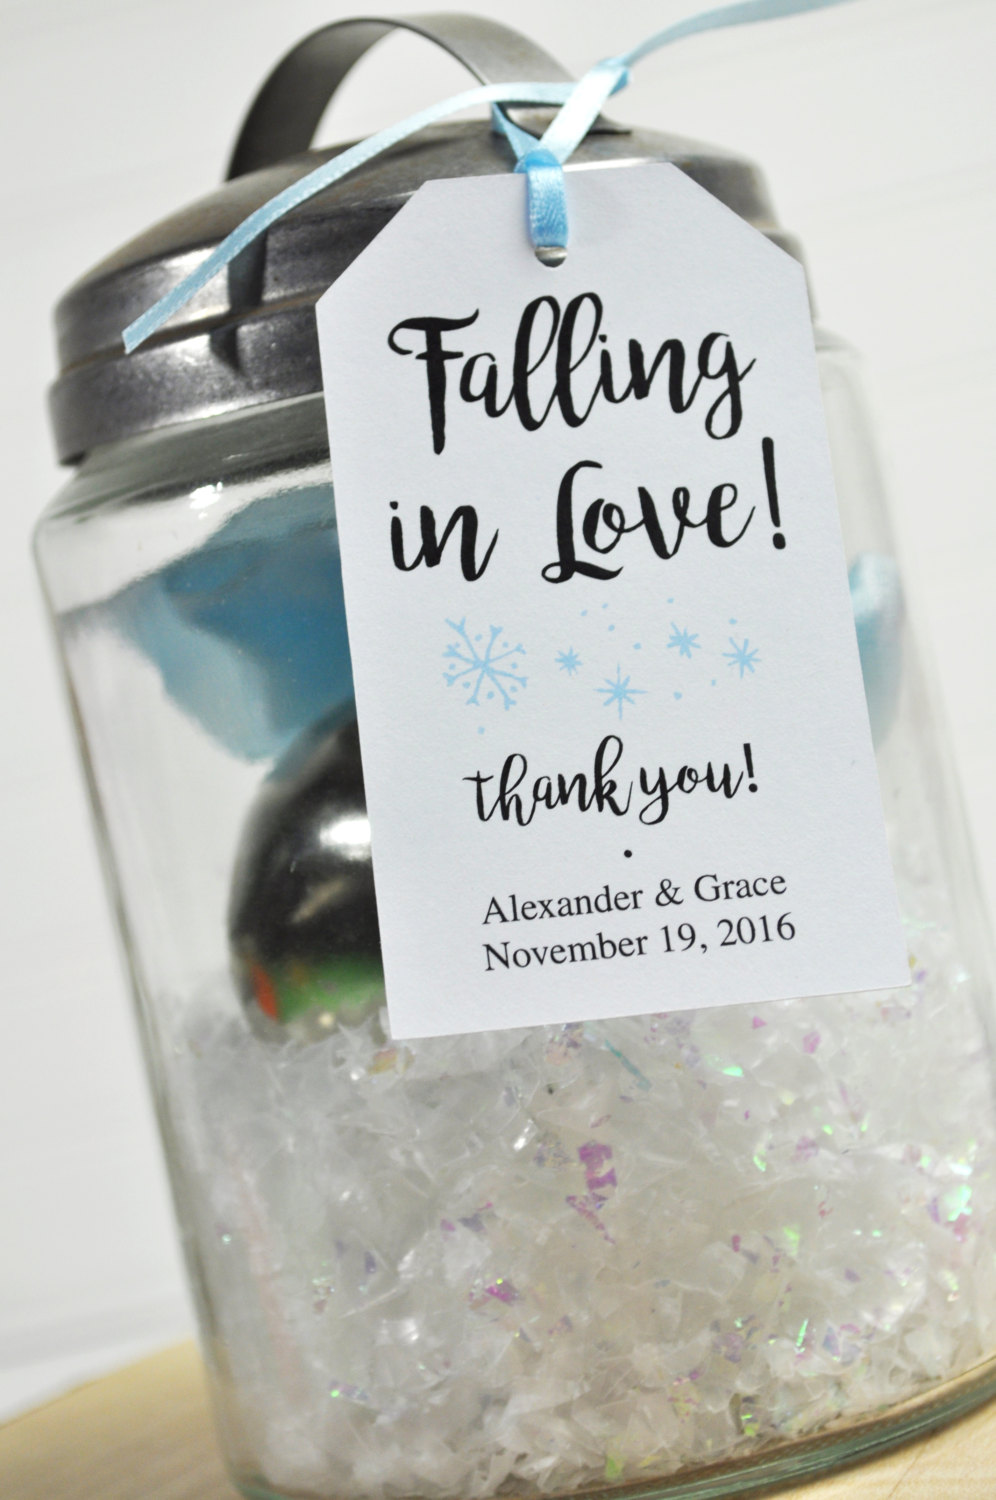 Winter Wedding Favors Bridal Shower Favor Tags Snowflake Favor Tags Thank You Tags Party Favors Personalized Favors Set Of 12